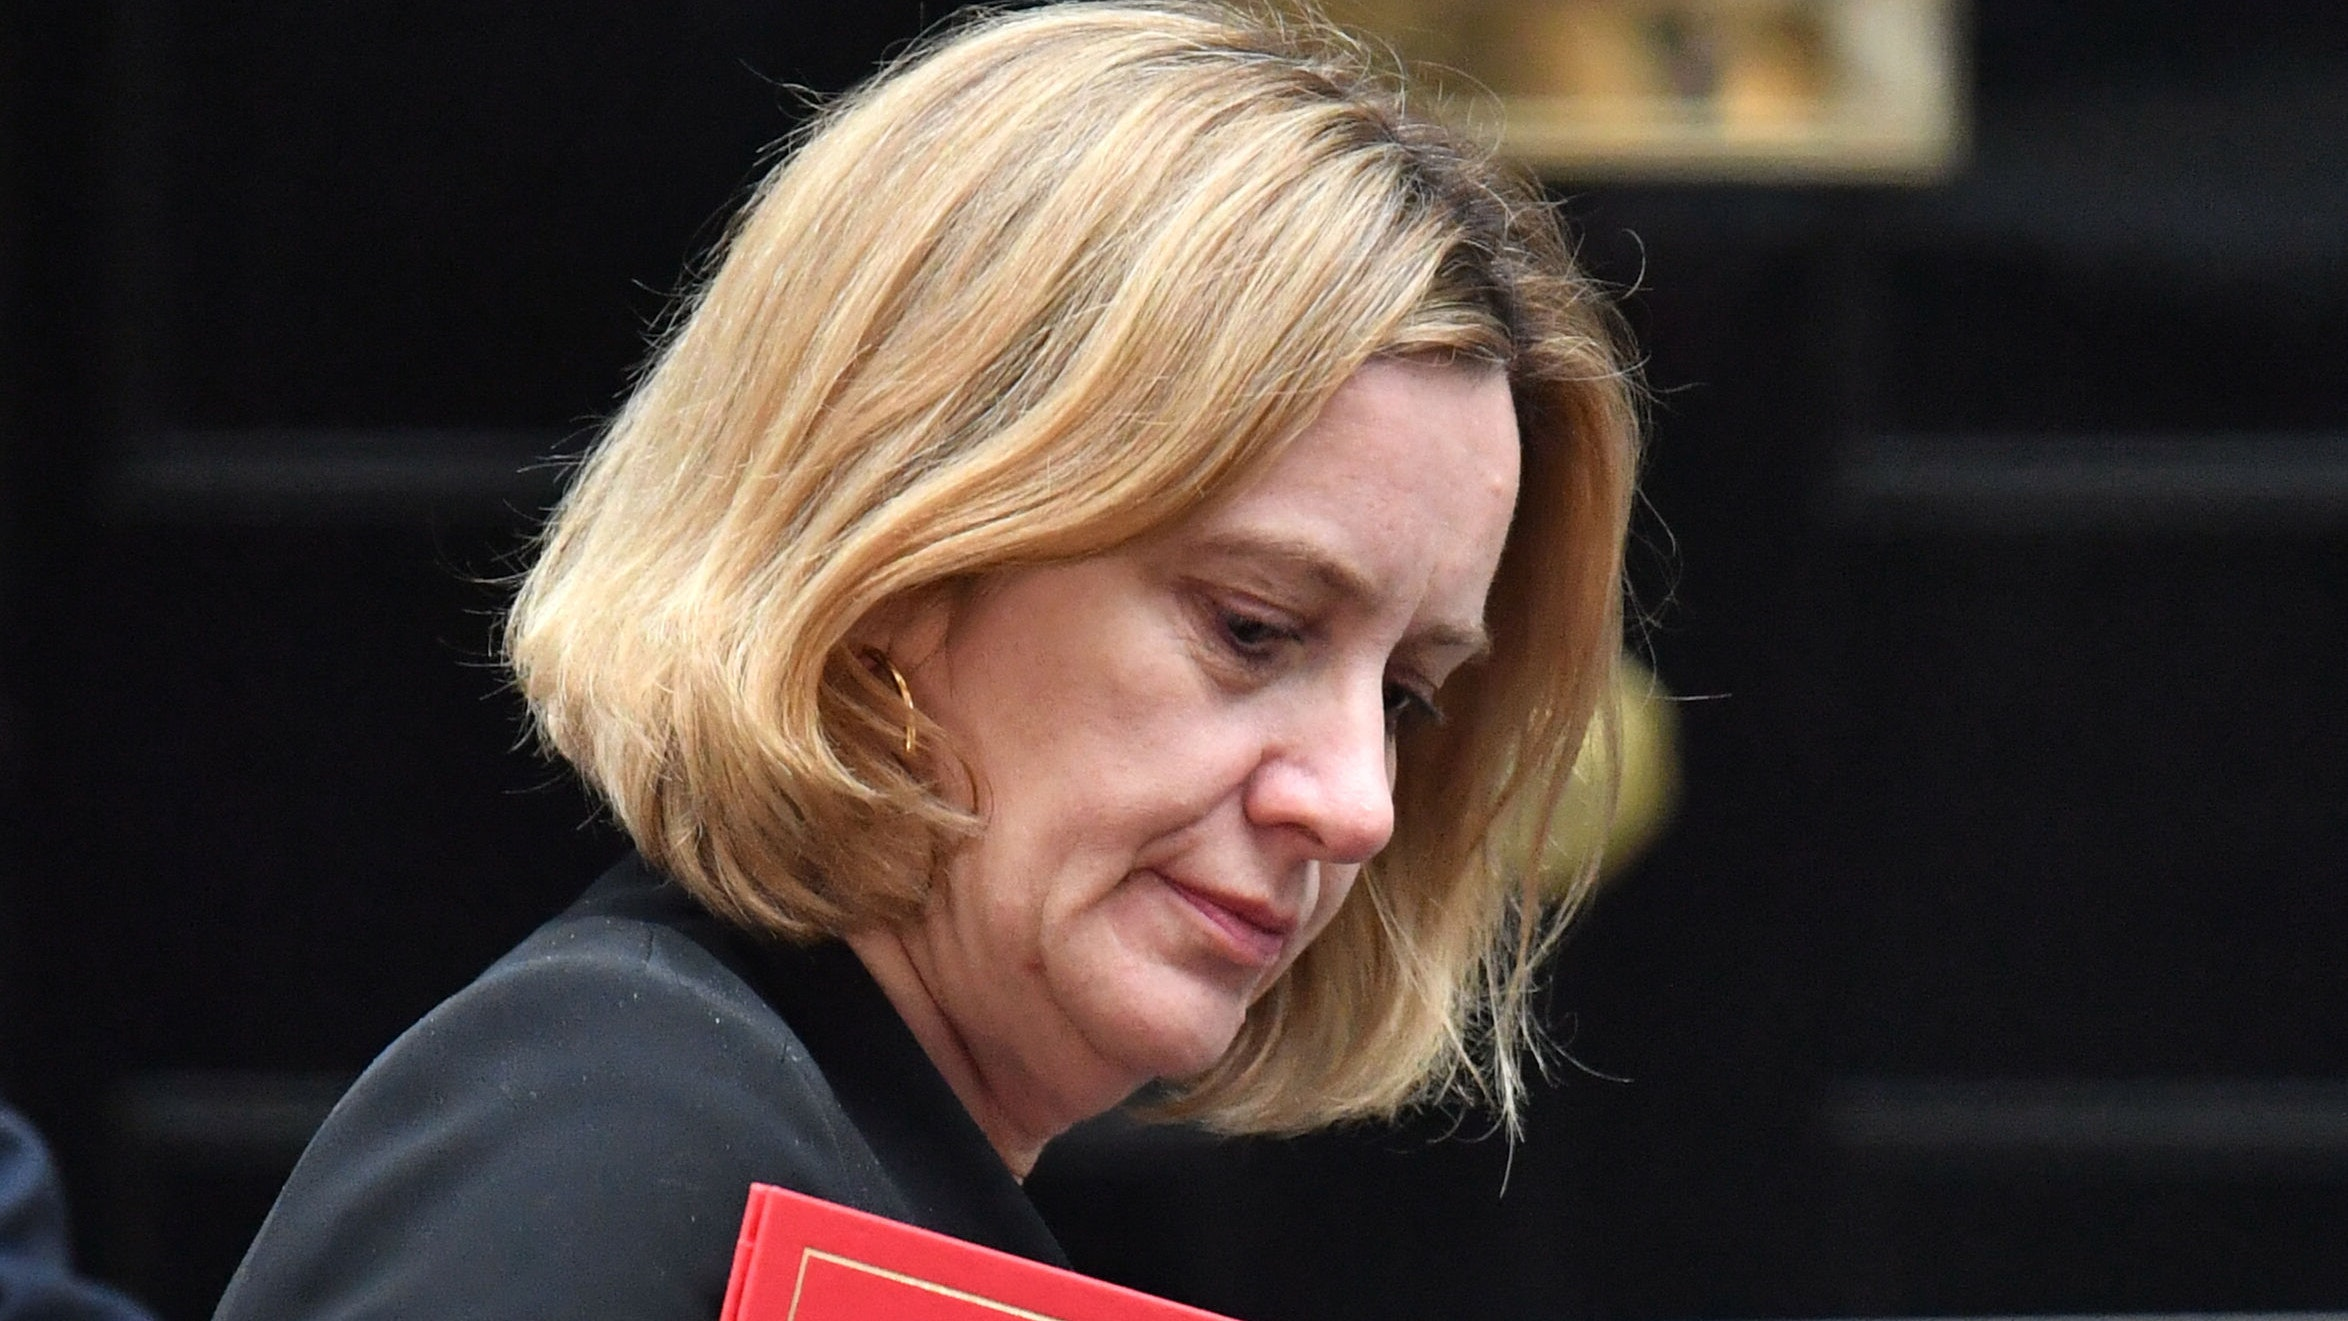 Windrush: Amber Rudd expected to make statement to MPs this afternoon on compensation